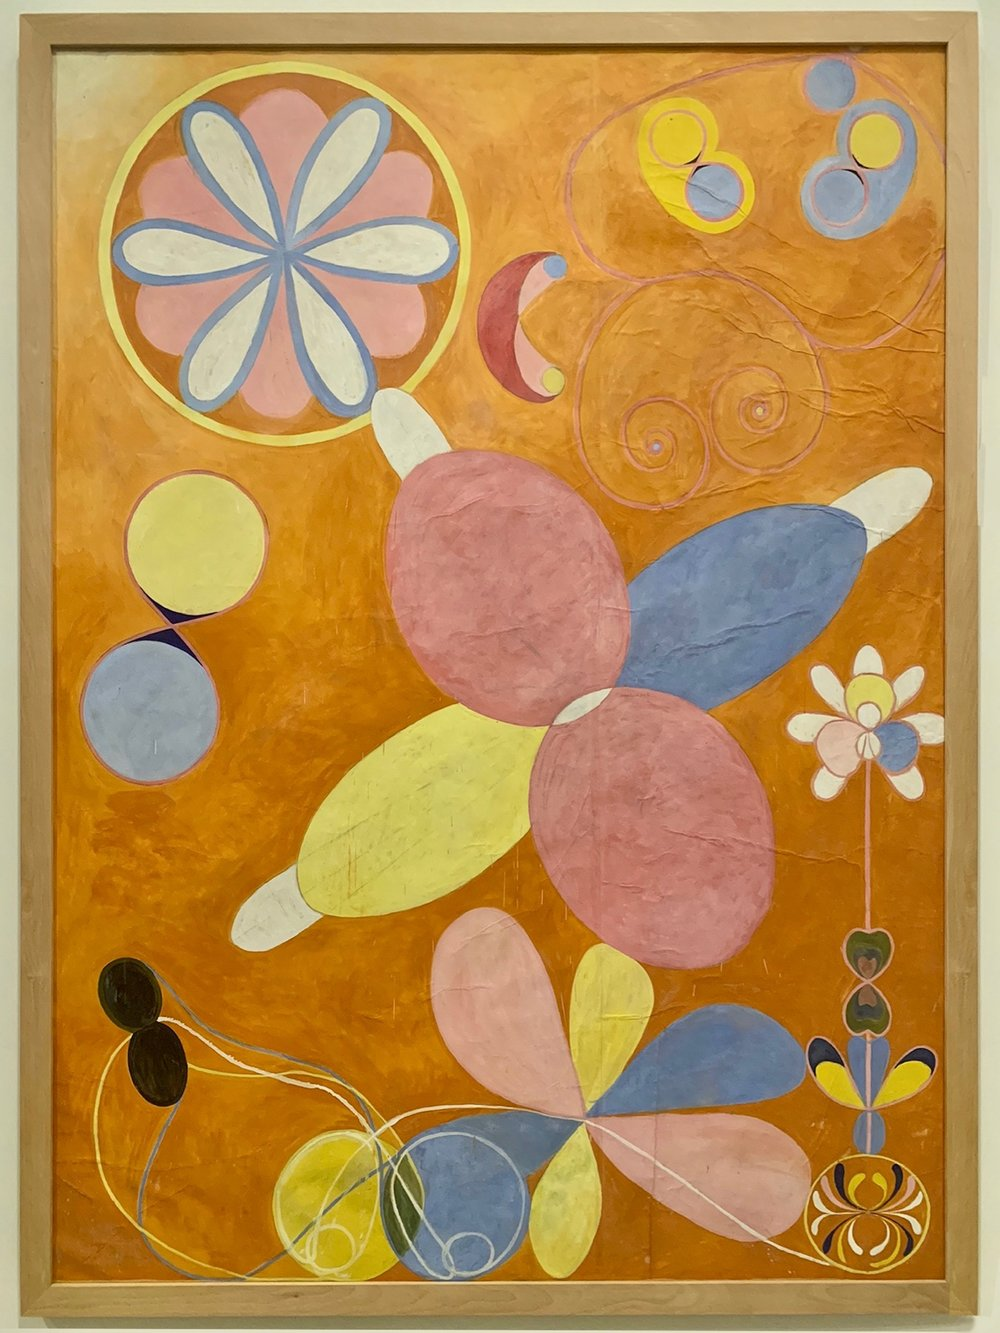 """""""Group IV, no 4, The Ten Largest,"""" by Hilma af Klint. Photographed as installed at the Guggenheim Museum."""